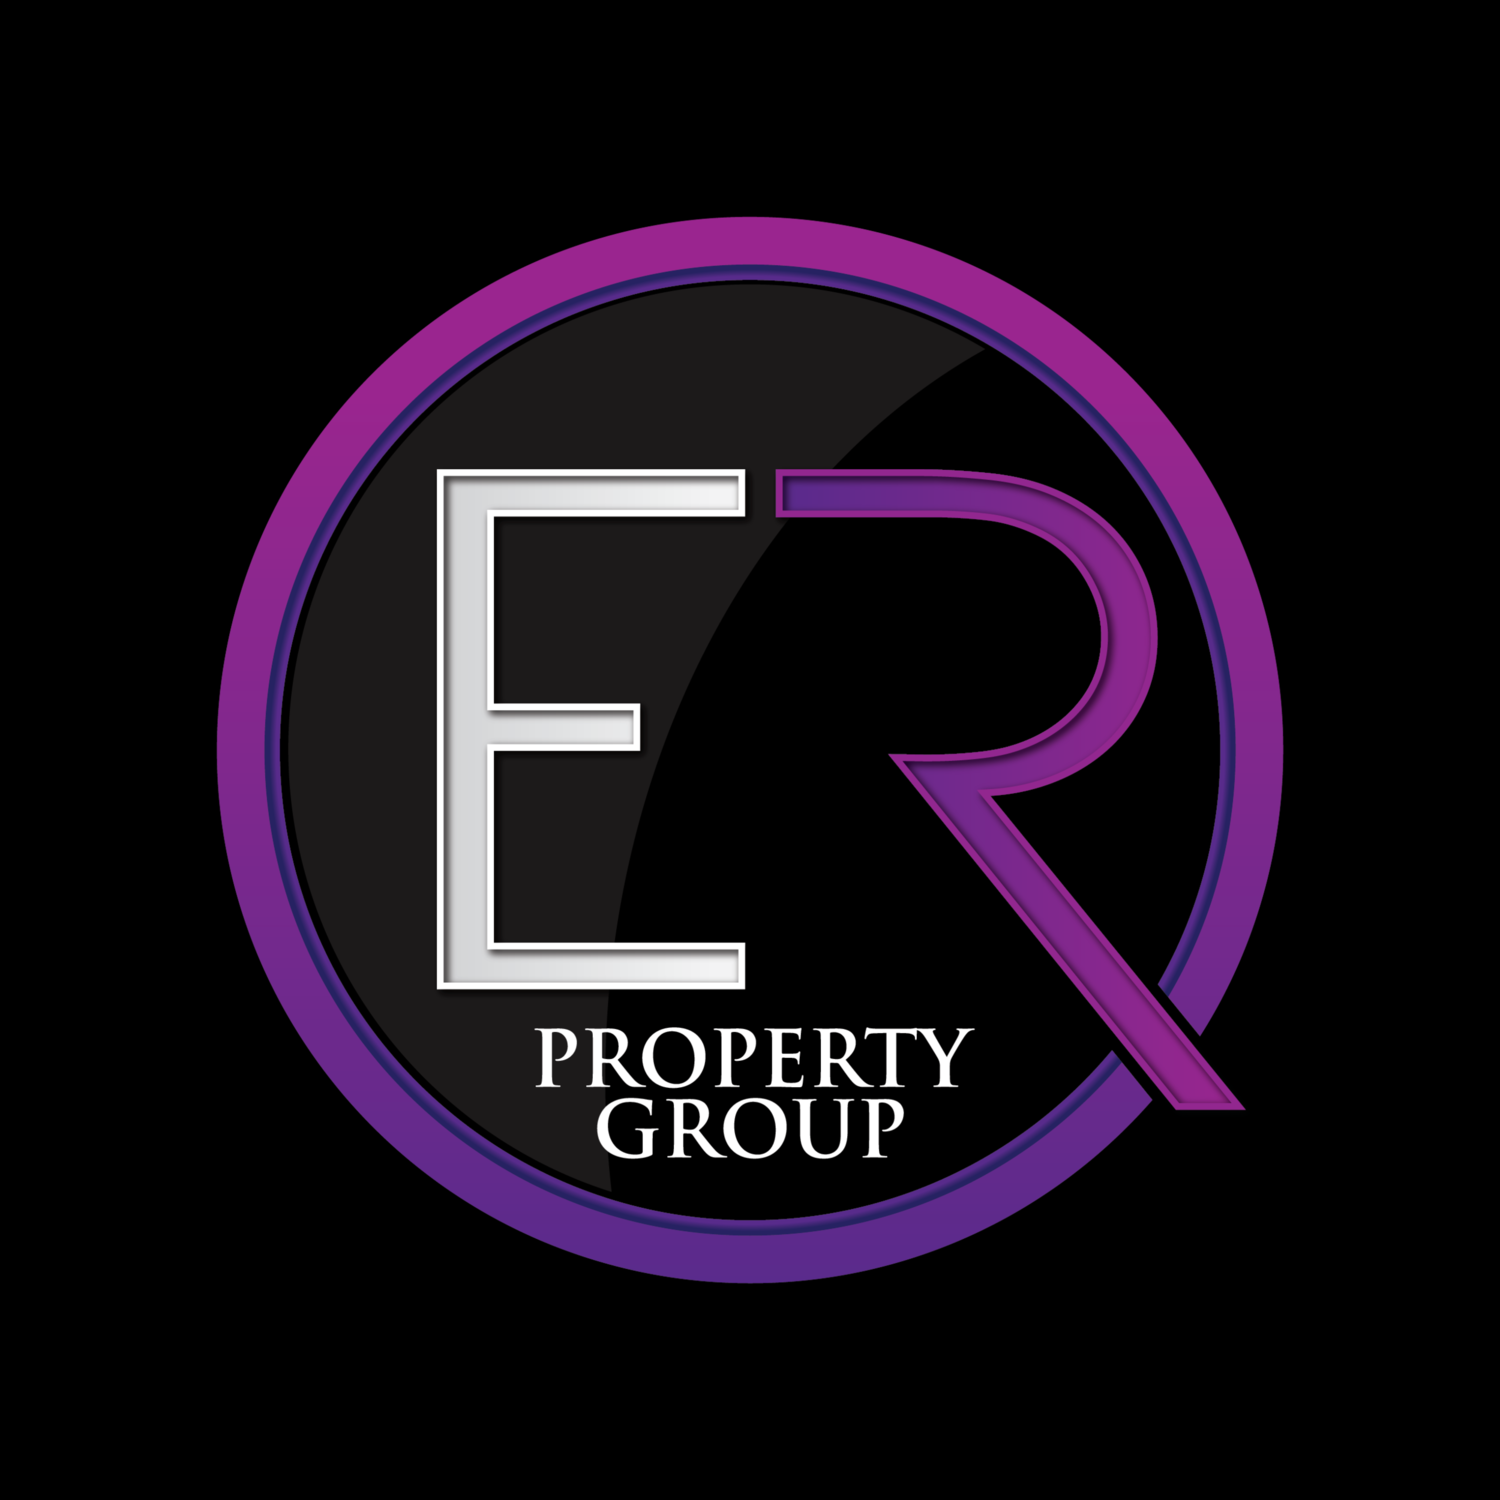 E & R PROPERTY GROUP